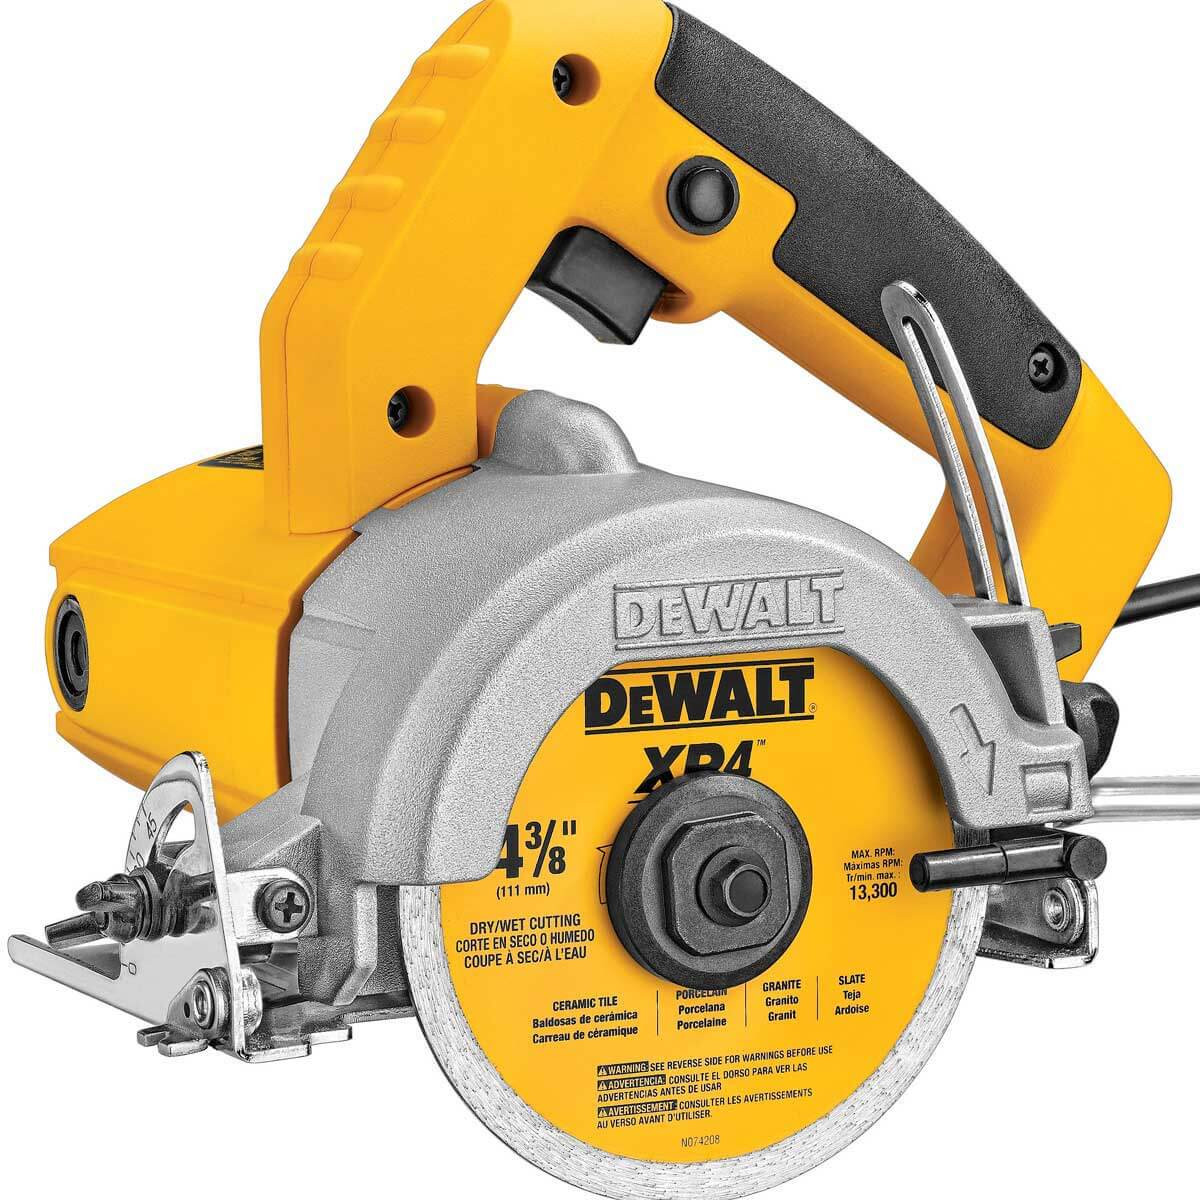 Dewalt heavy duty wetdry tile saw contractors direct dewalt dwc860w heavy duty 4 38 wetdry dailygadgetfo Gallery